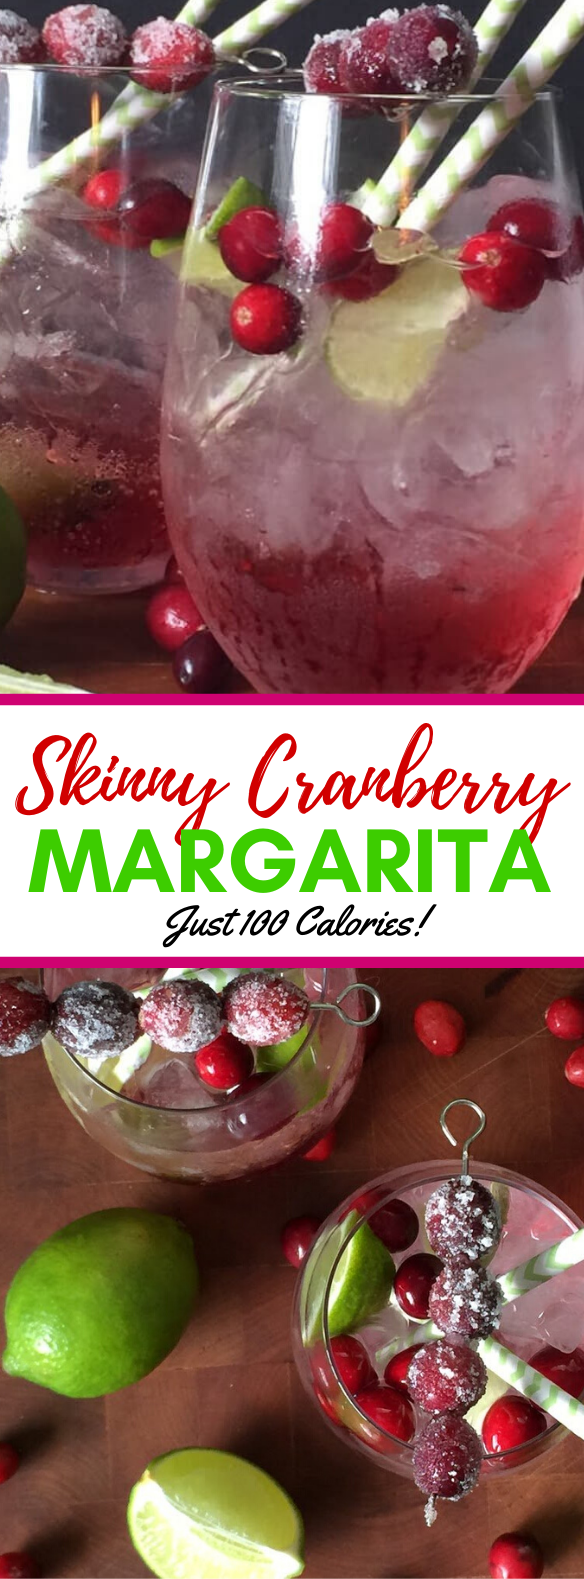 Delicious Skinny Cranberry Margarita Recipe #drinks #lowcalorie